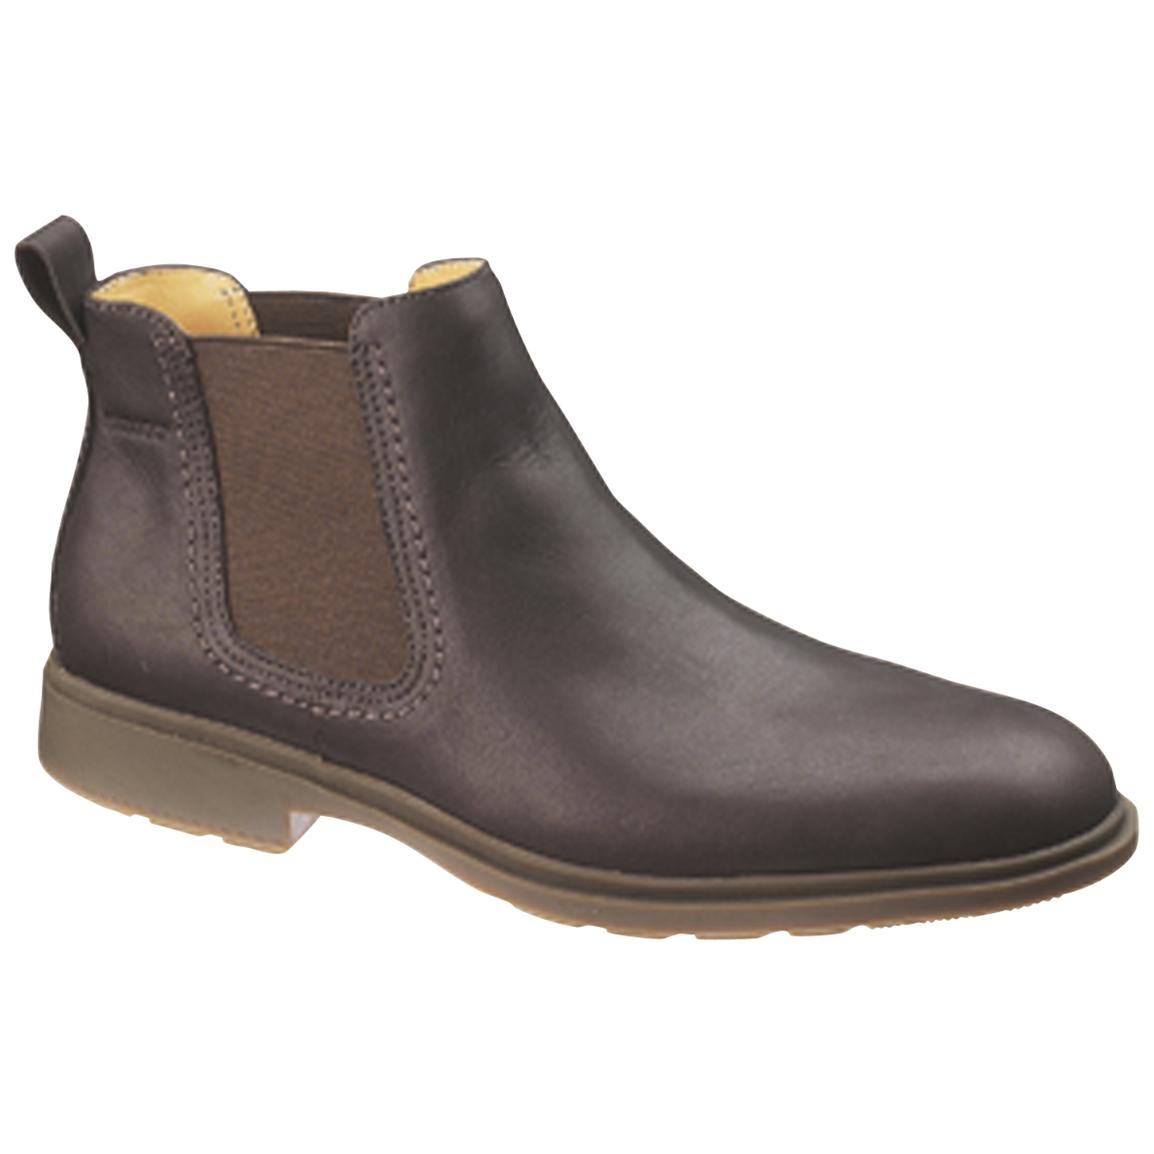 The perfect boots can be hard to find, but we've done the legwork for you. The Walking Company's collection of comfort boots features classic and contemporary styles made with the finest leathers and natural materials to provide you with the perfect boots for every occasion.